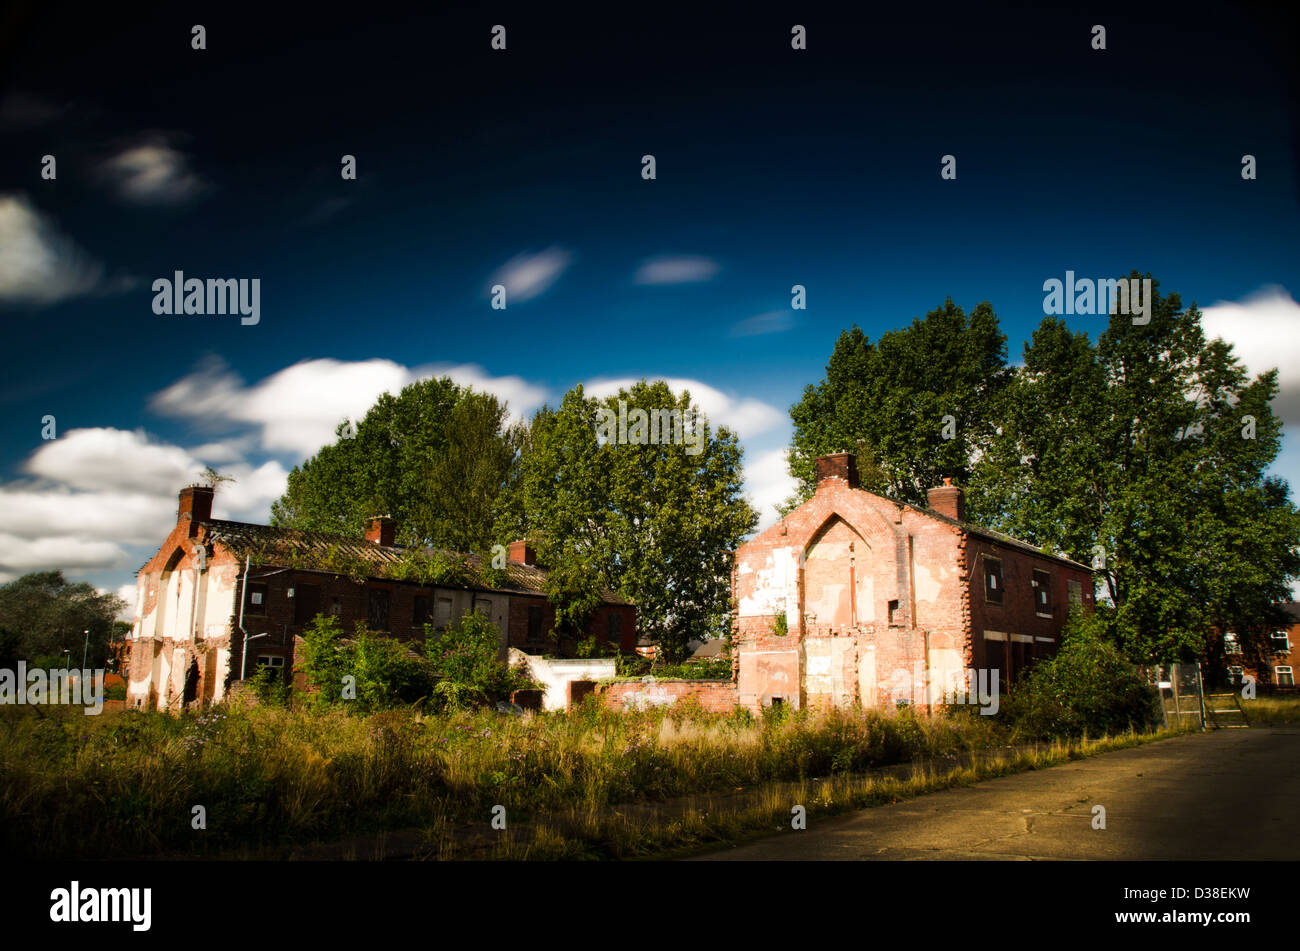 Urban decay, derelict houses, abandoned, renewal, trees blue sky, clouds, - Stock Image